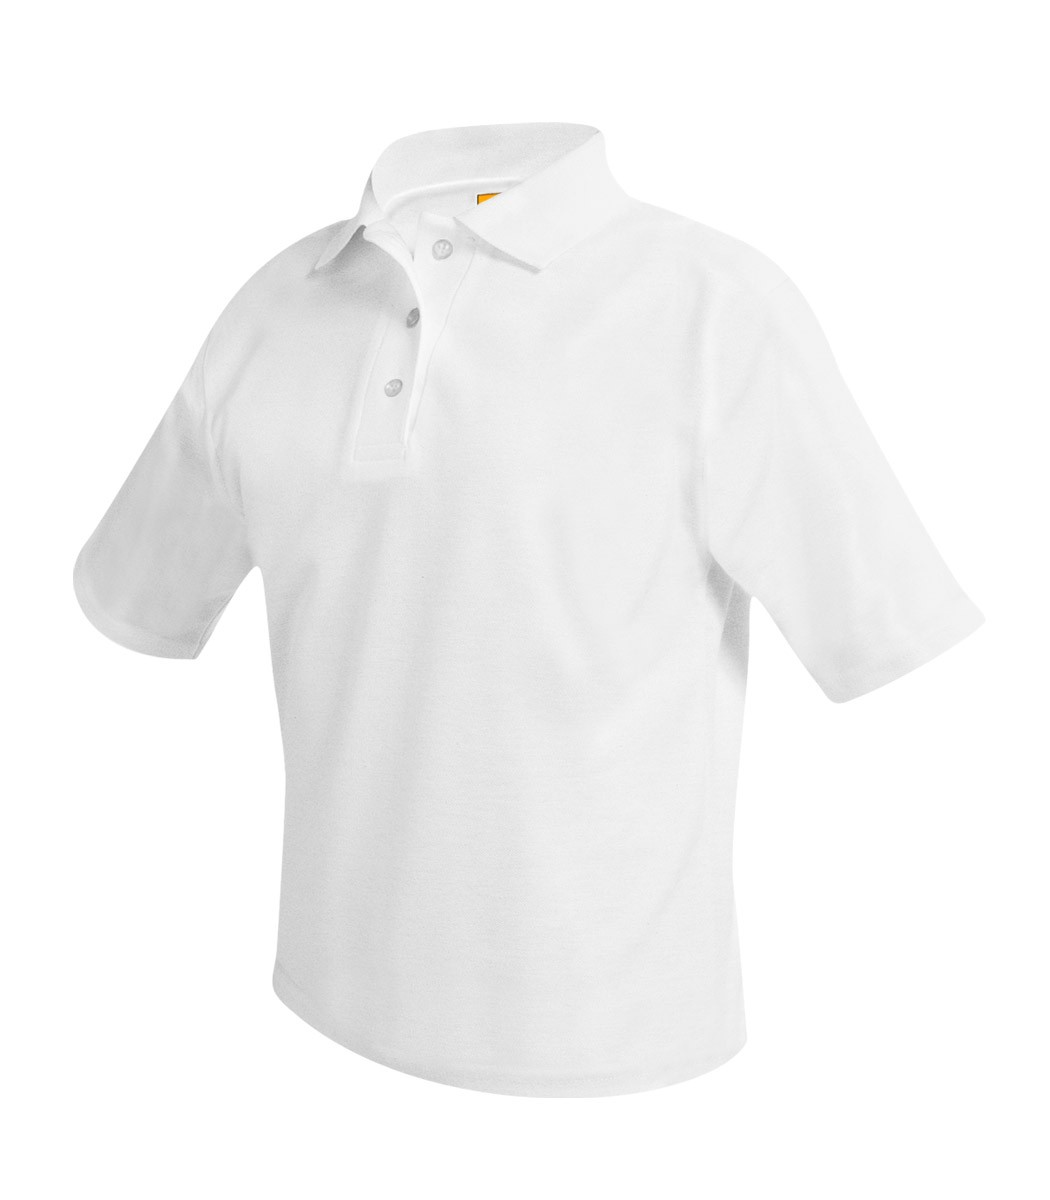 SFA Girls' White S/S Polo w/ Crest Logo